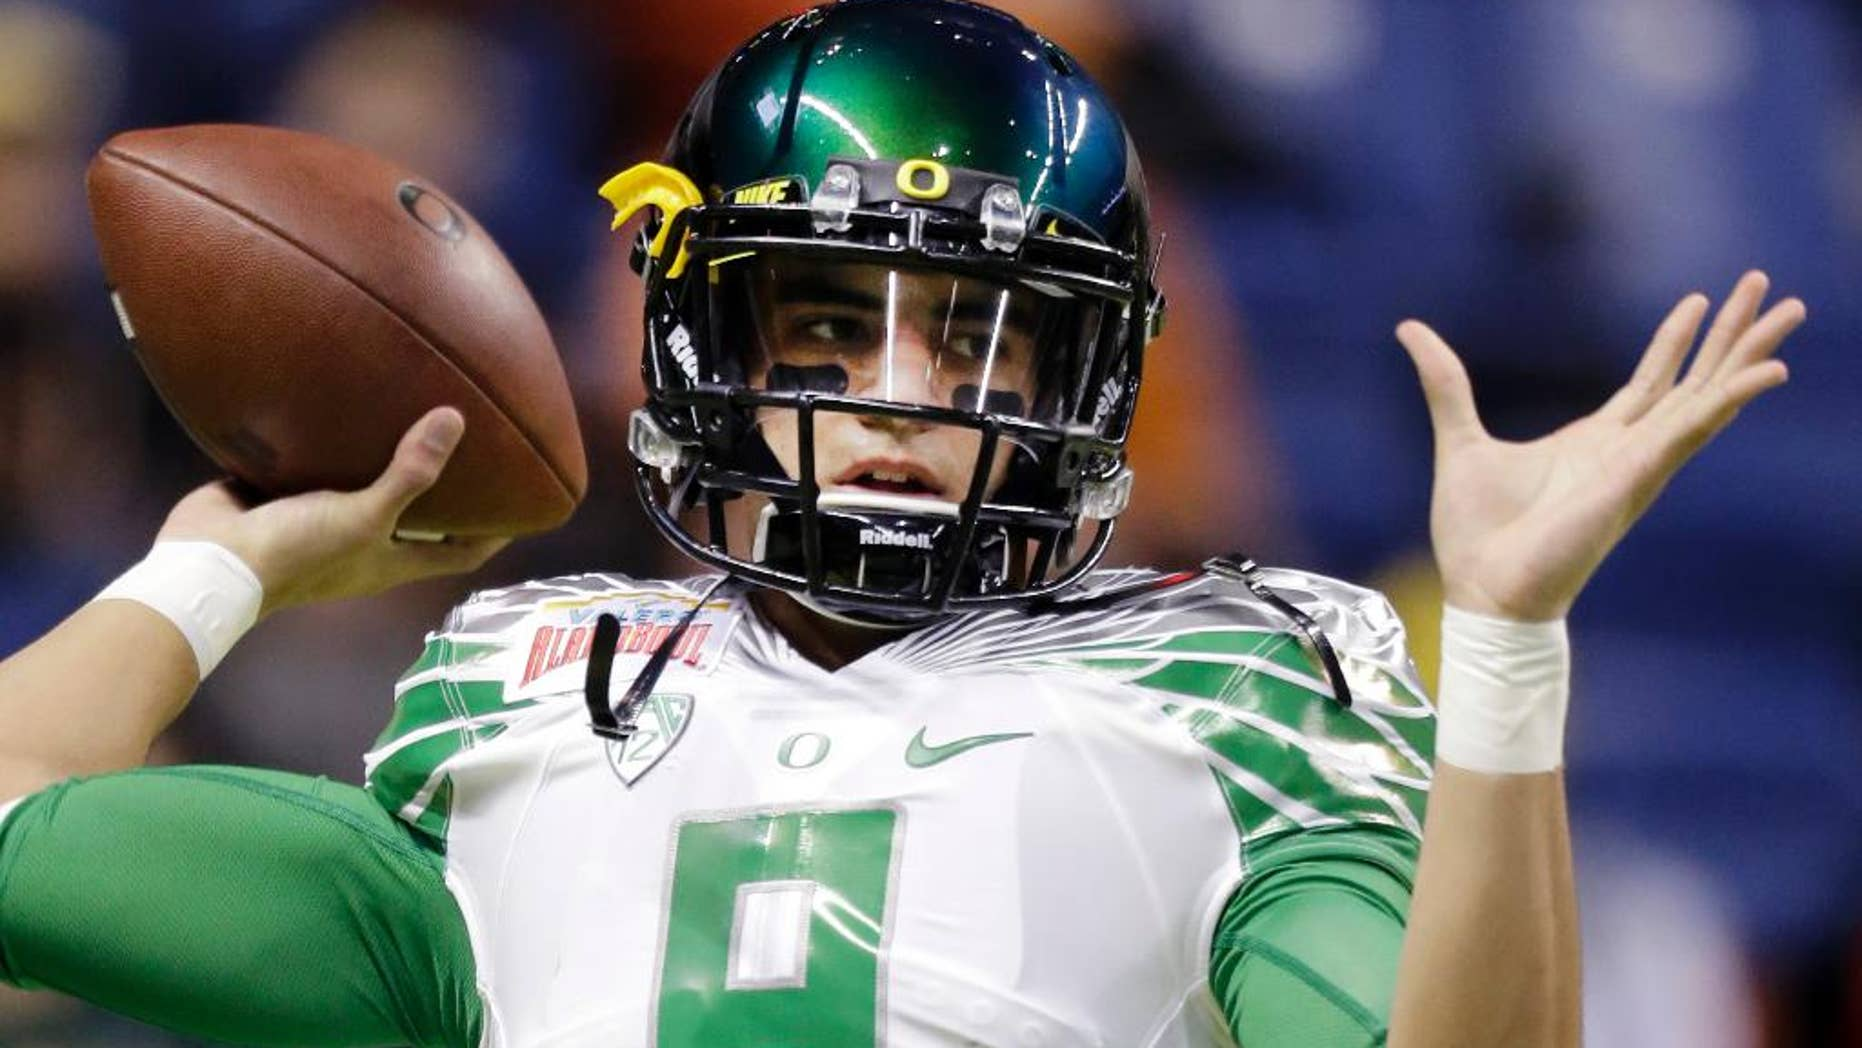 FILE - This Dec. 30, 2013, file photo shows Oregon's Marcus Mariota warms up for the Valero Alamo Bowl NCAA college football game against Texas in San Antonio. Mariota hears the jokes about his course load this semester: yoga and golf. For those who suggest he might want to add an elective in underwater basketweaving, the reality is this: The star quarterback for No. 3 Oregon finished his degree requirements in just three years.  (AP Photo/Eric Gay, File)